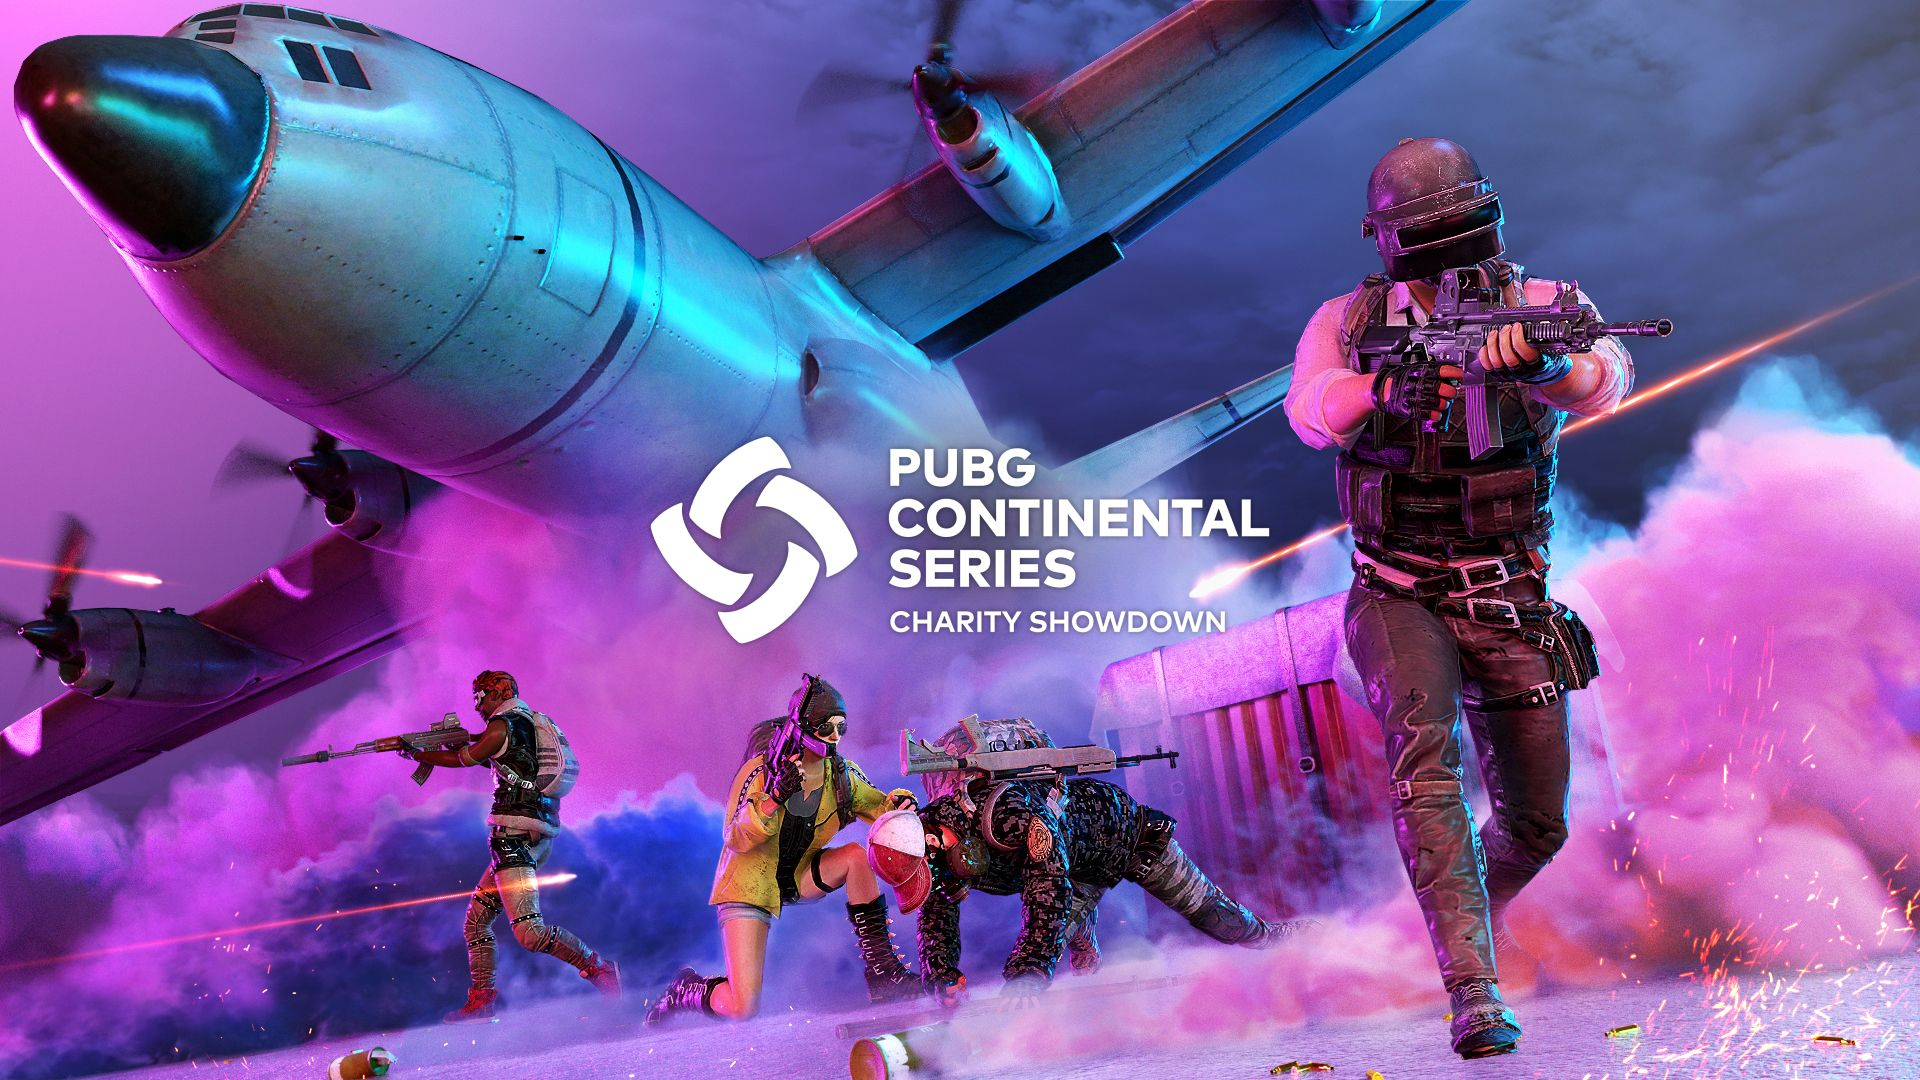 PUBG Continental Series: Charity Showdown: Live results and standings